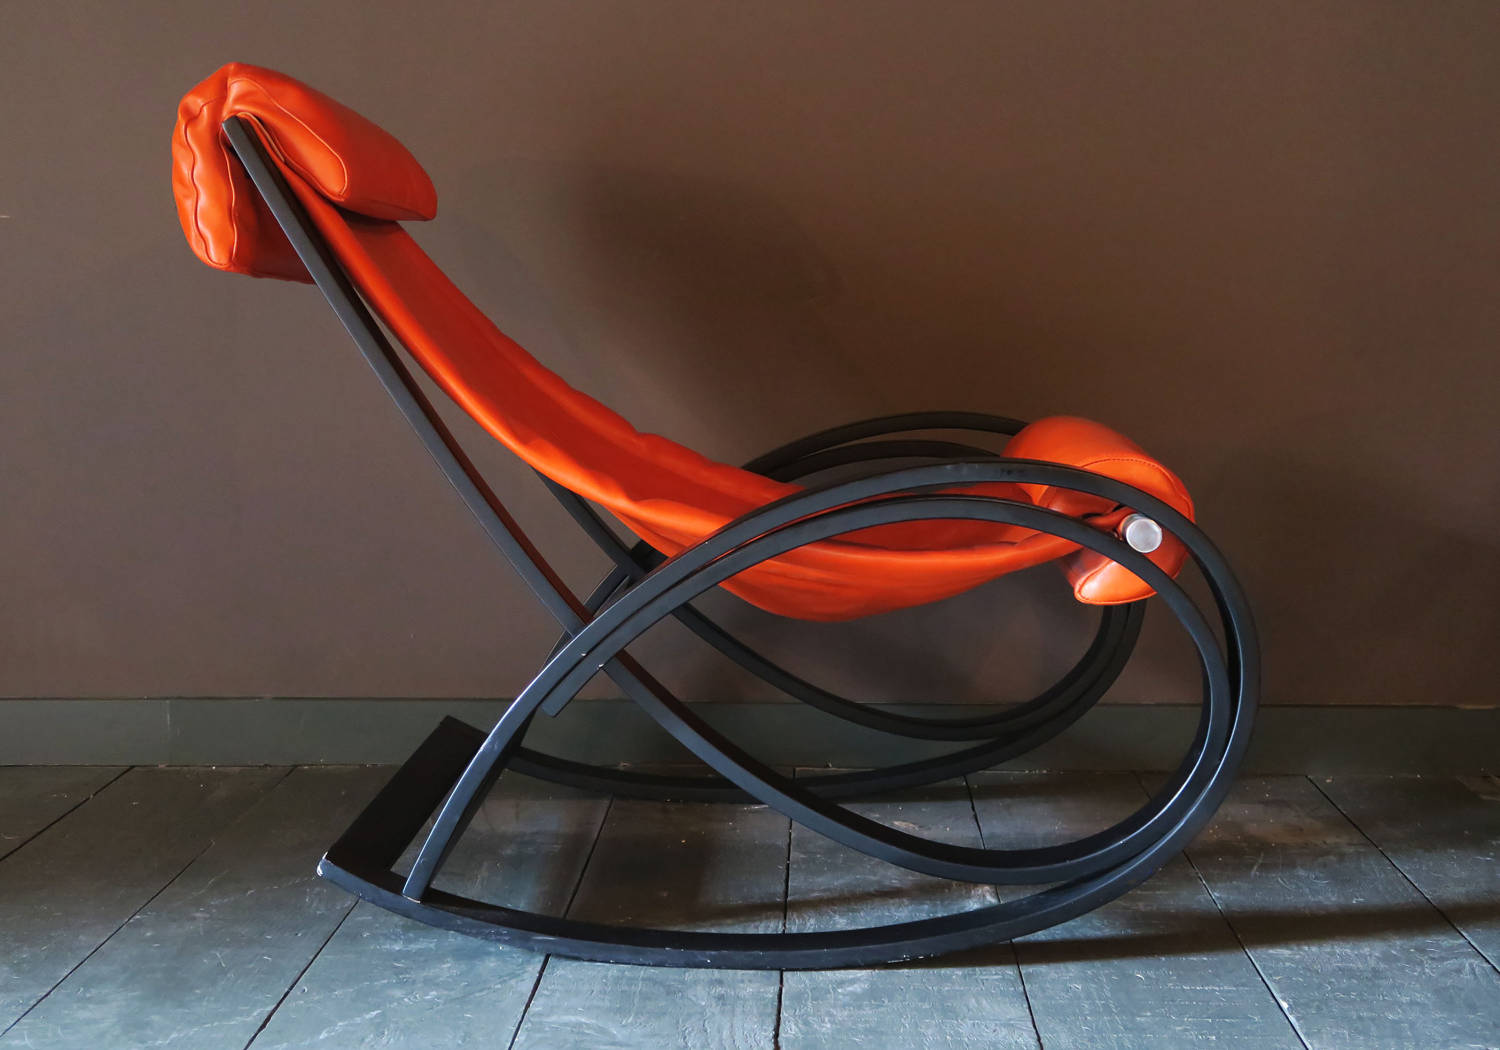 leather-rocking-chair-italy-circa-1960_12727_pic2_size3.jpg